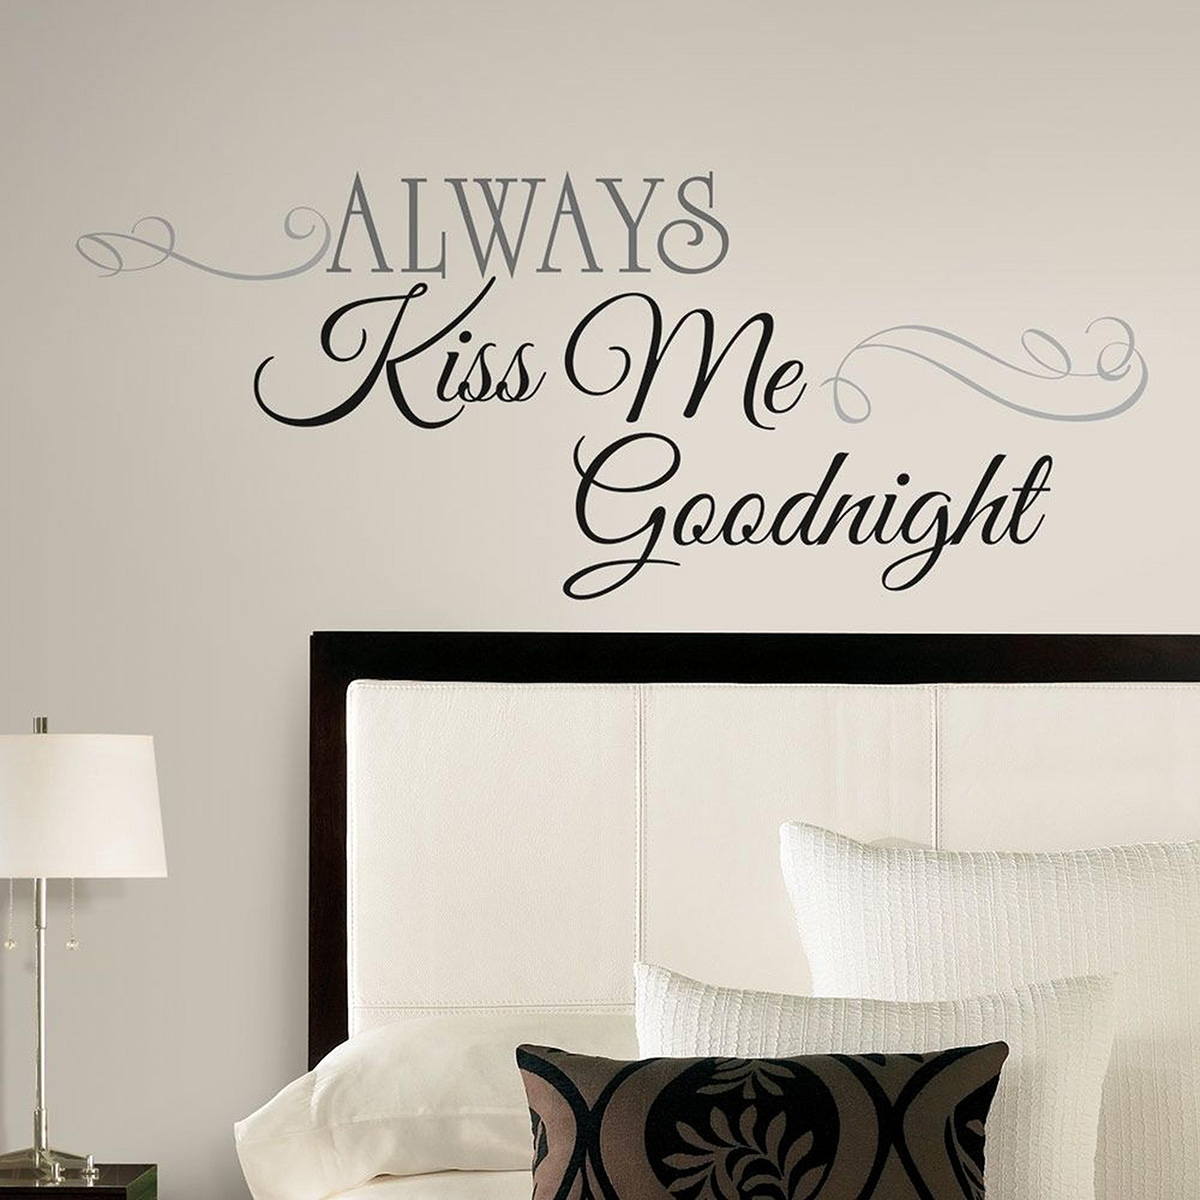 Always kiss me goodnight sticker